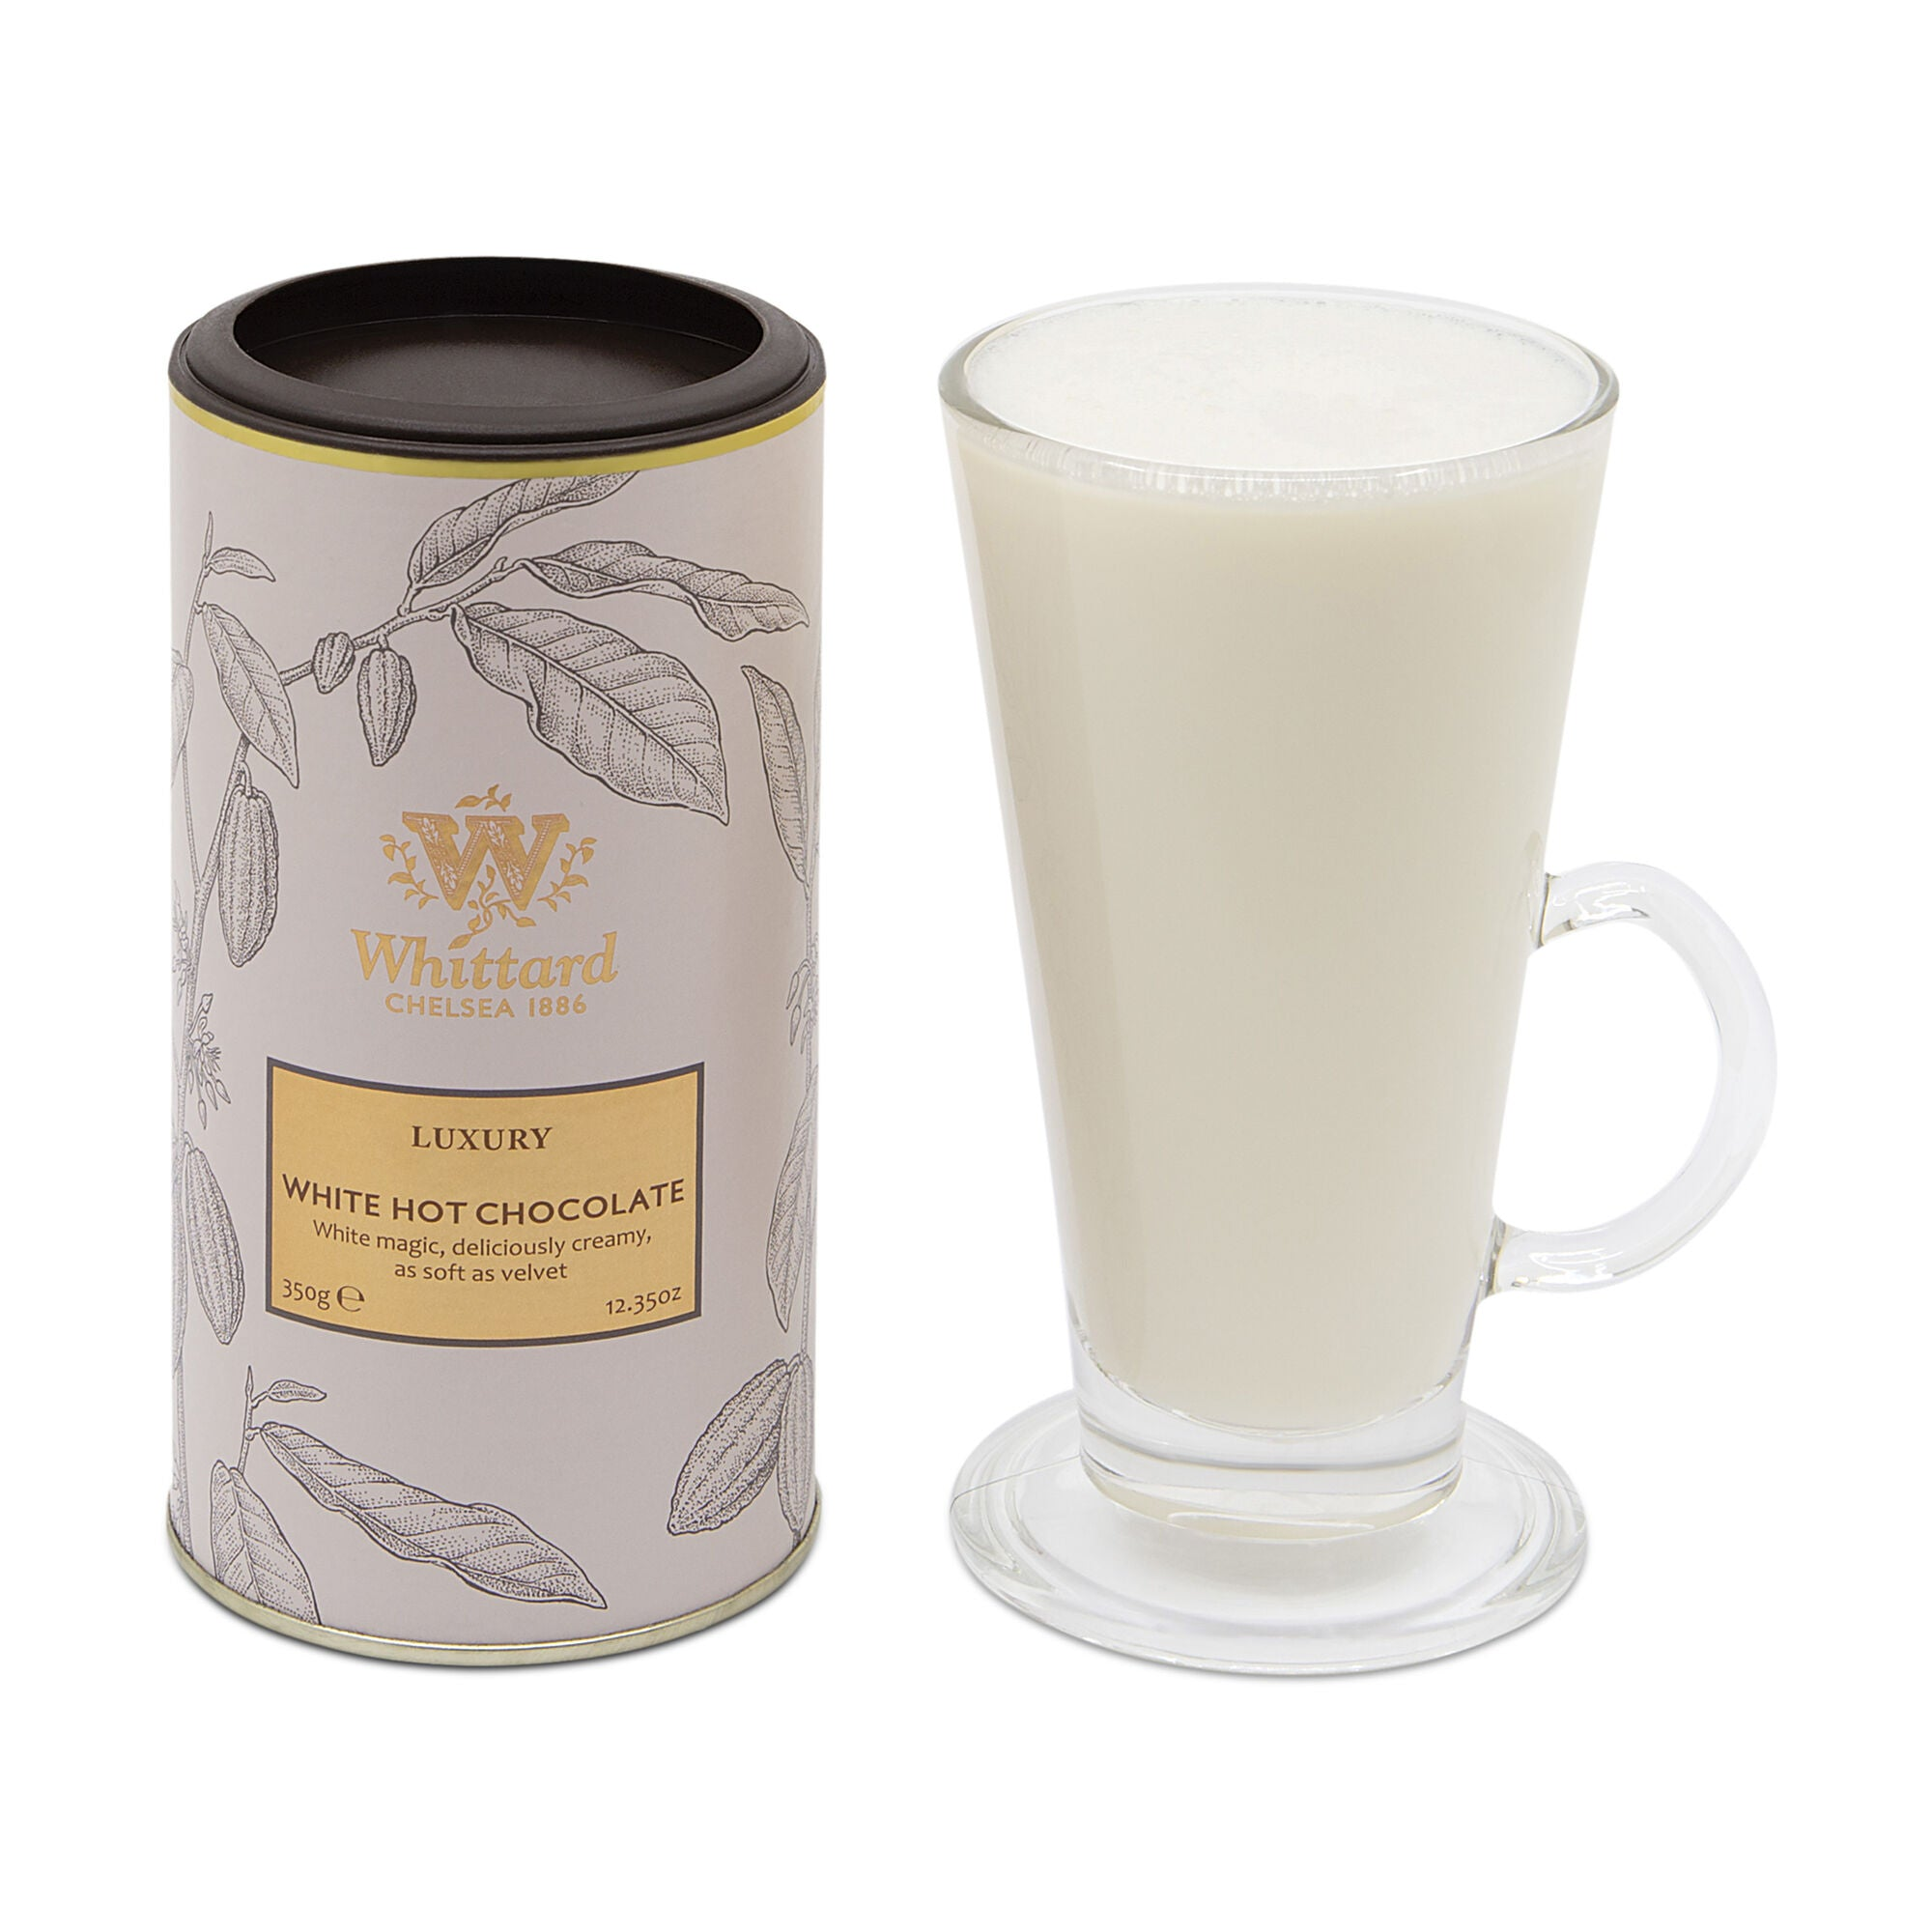 Luxury White Hot Chocolate